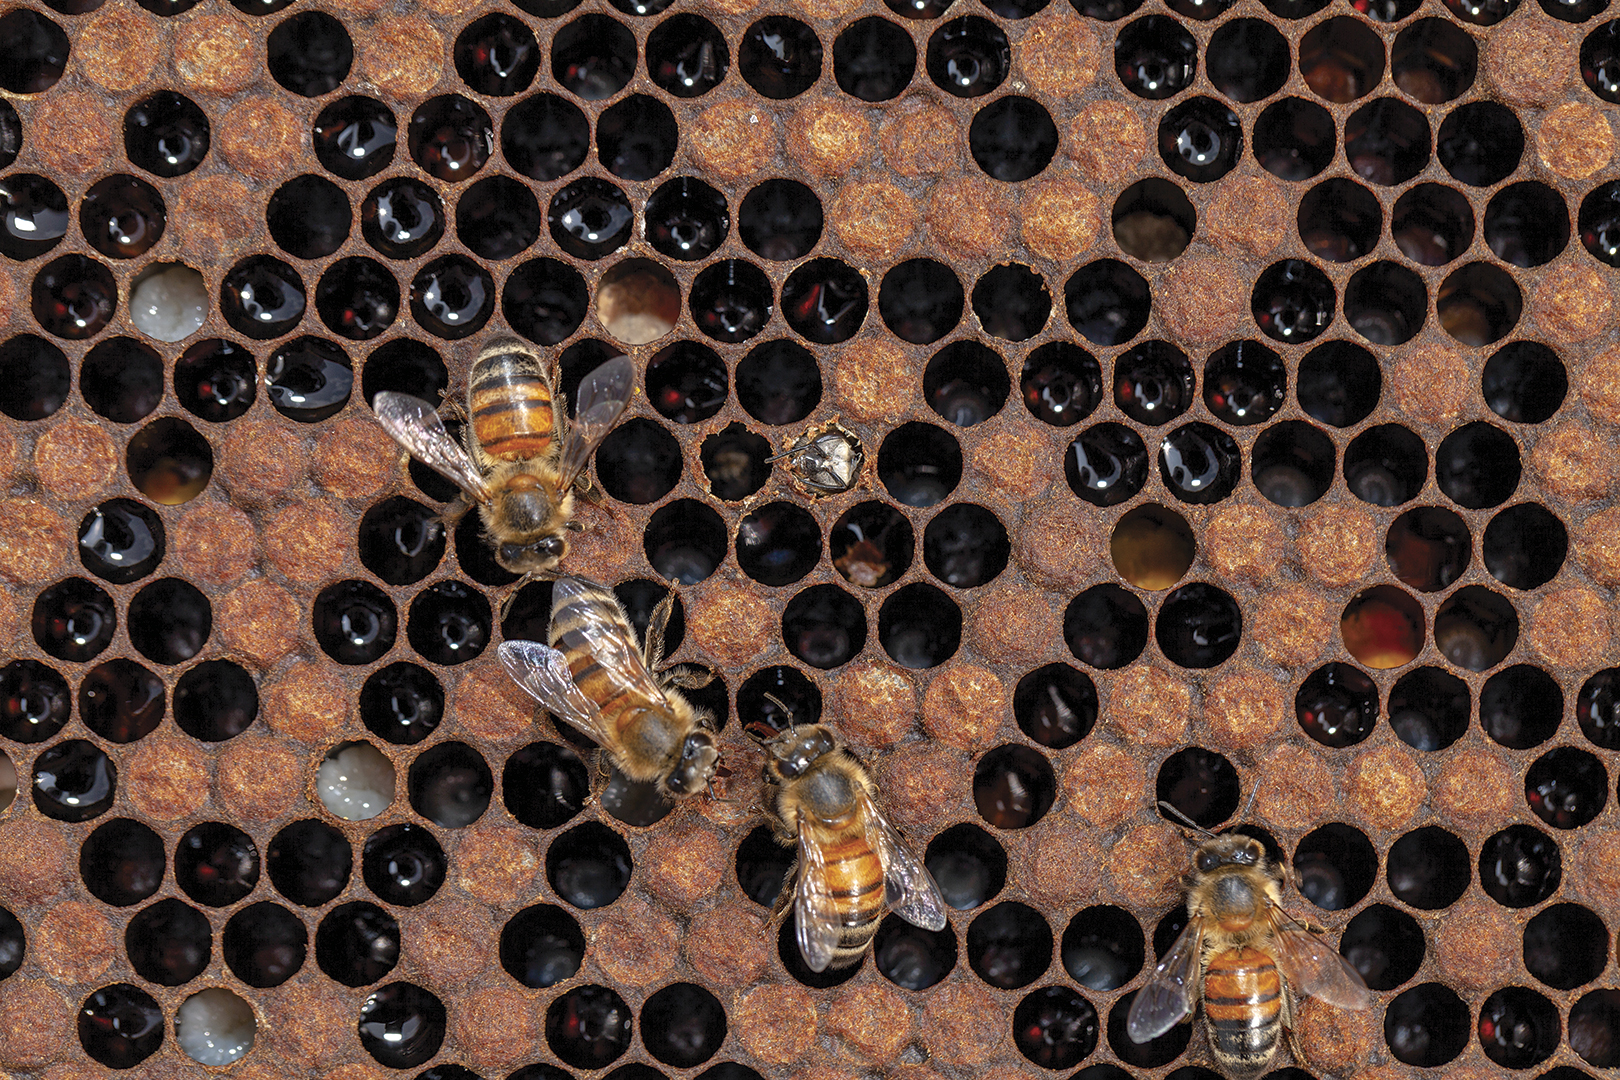 Close-up image of bees and beehive honeycomb.